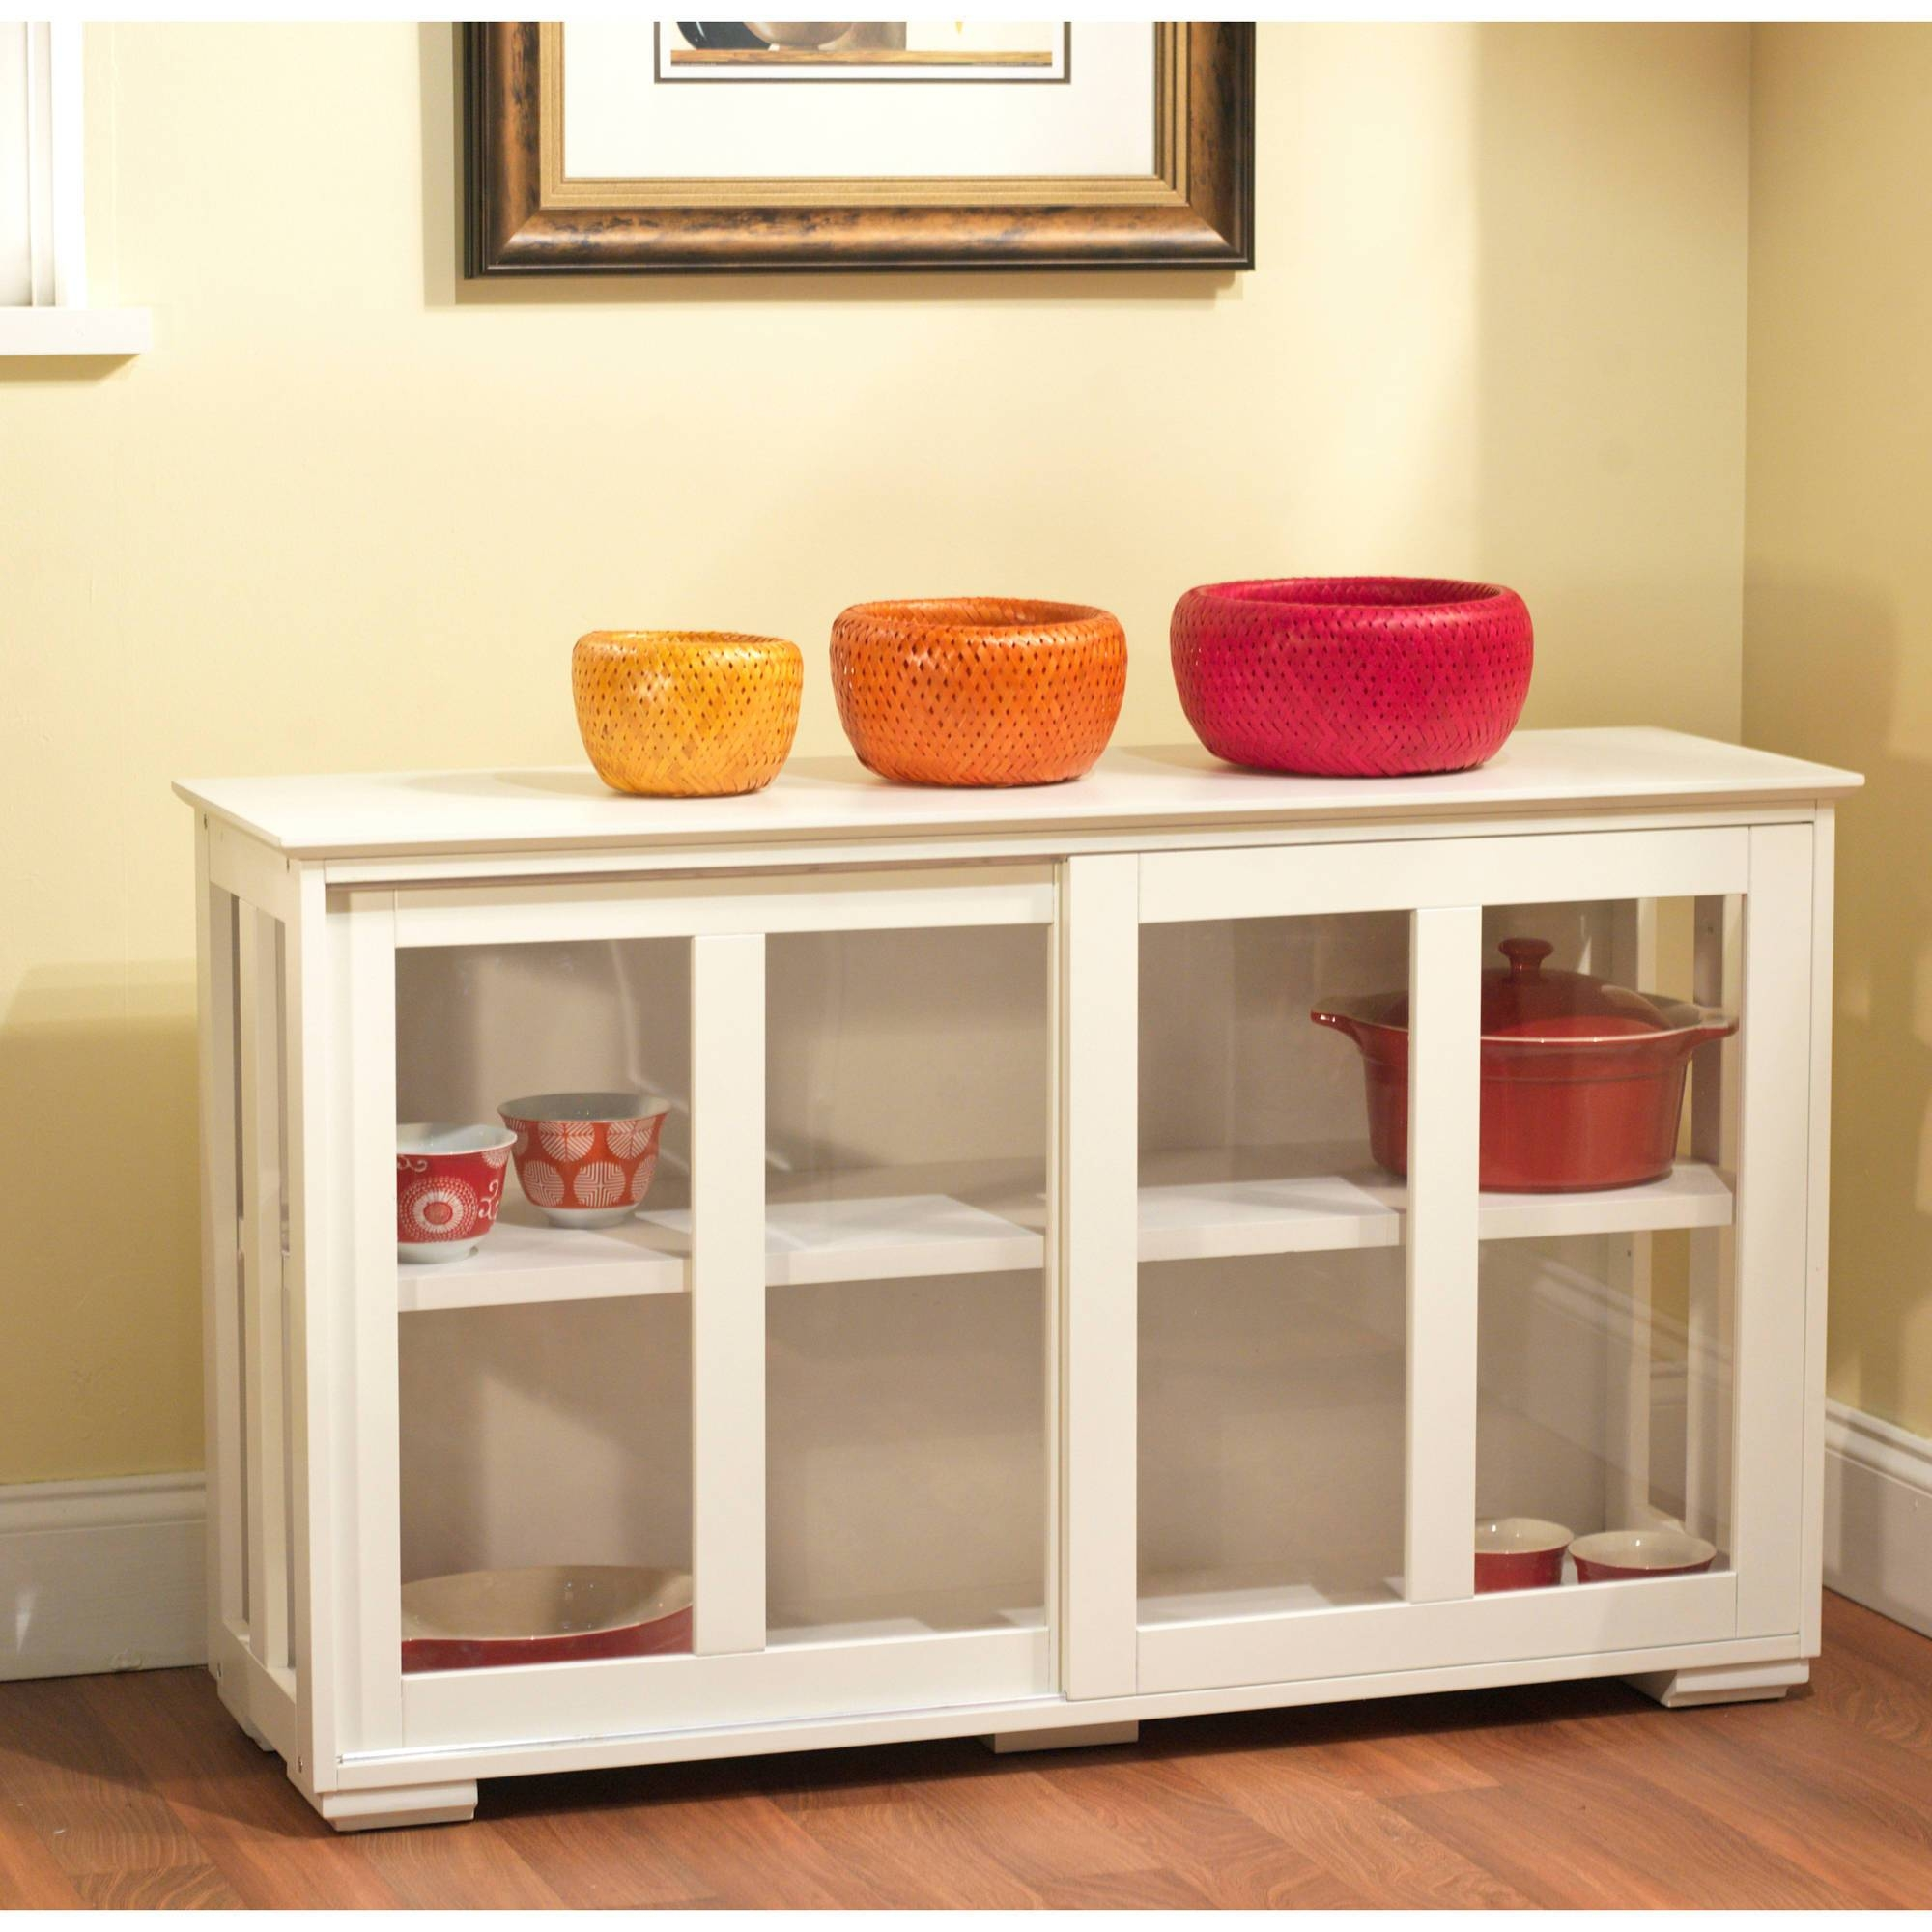 Sideboards: Astounding Narrow Sideboards And Buffets 8 Foot Buffet Intended For Narrow Sideboards (View 5 of 20)